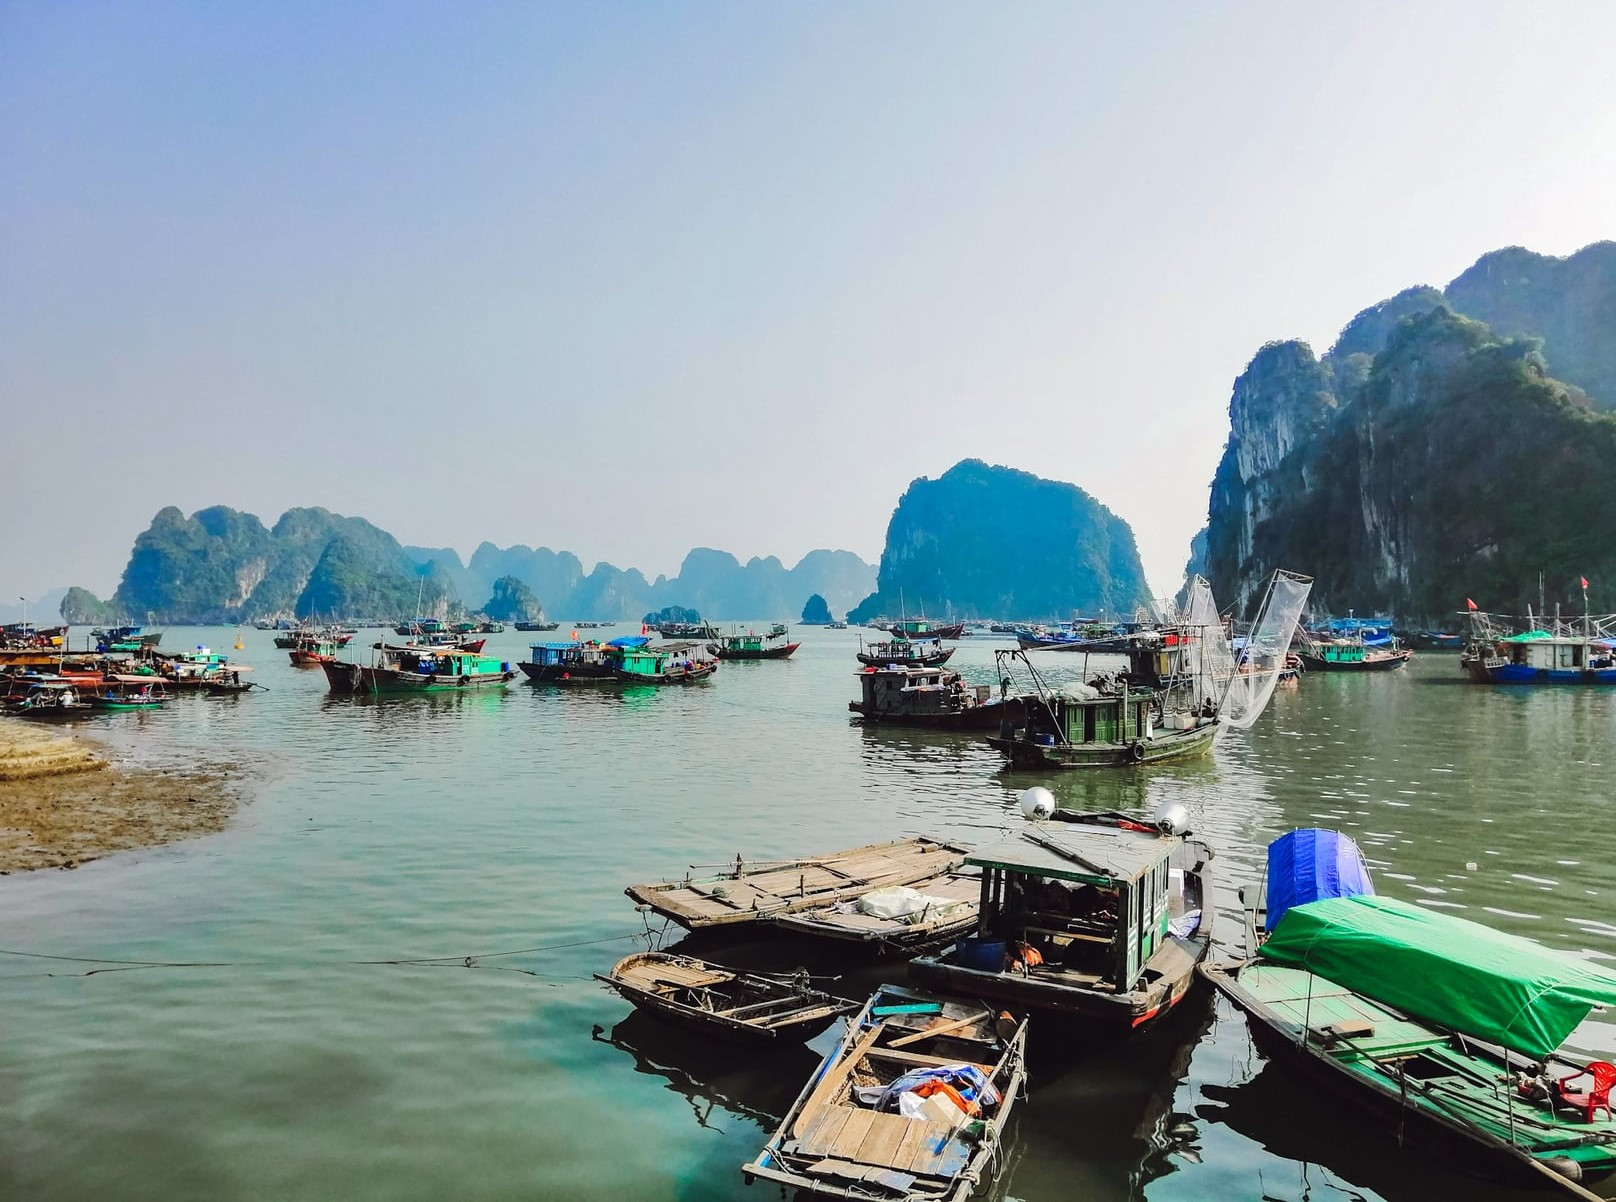 A clear afternoon in Ha Long Bay with the limestone rocks and bamboo boats